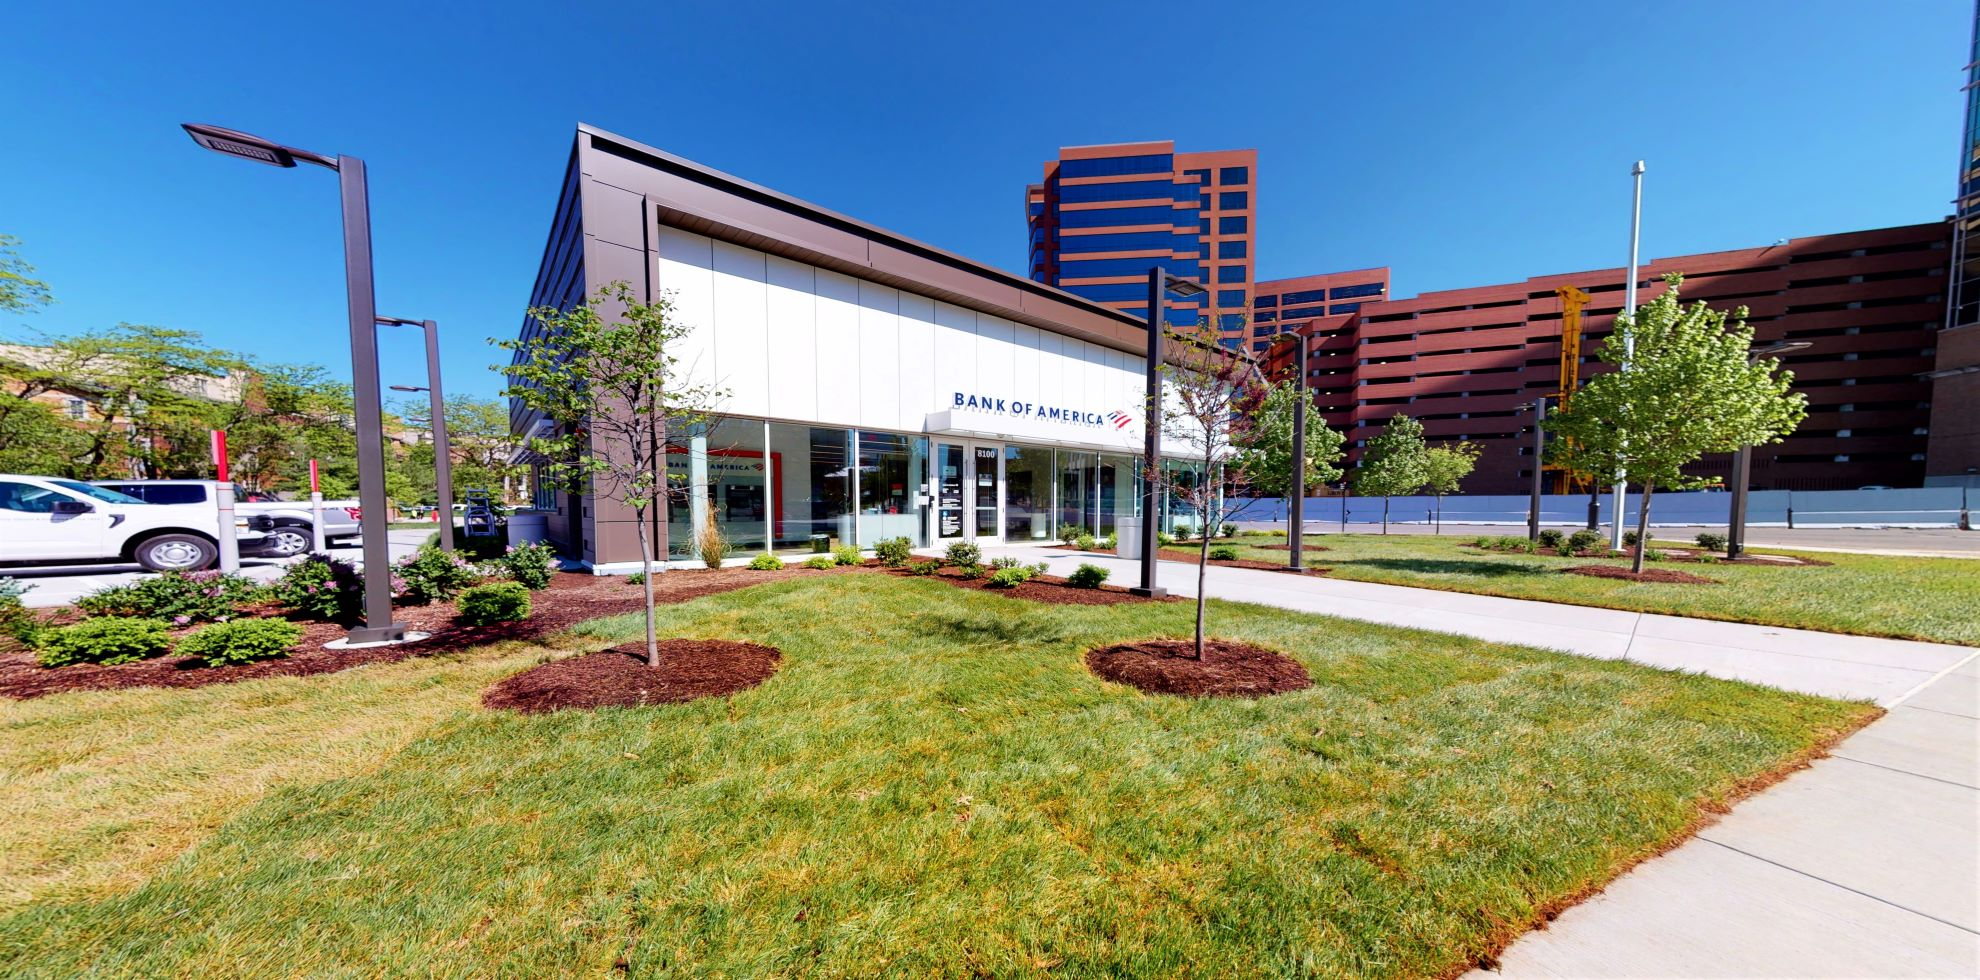 Bank of America financial center with walk-up ATM | 8100 Forsyth Blvd, Clayton, MO 63105